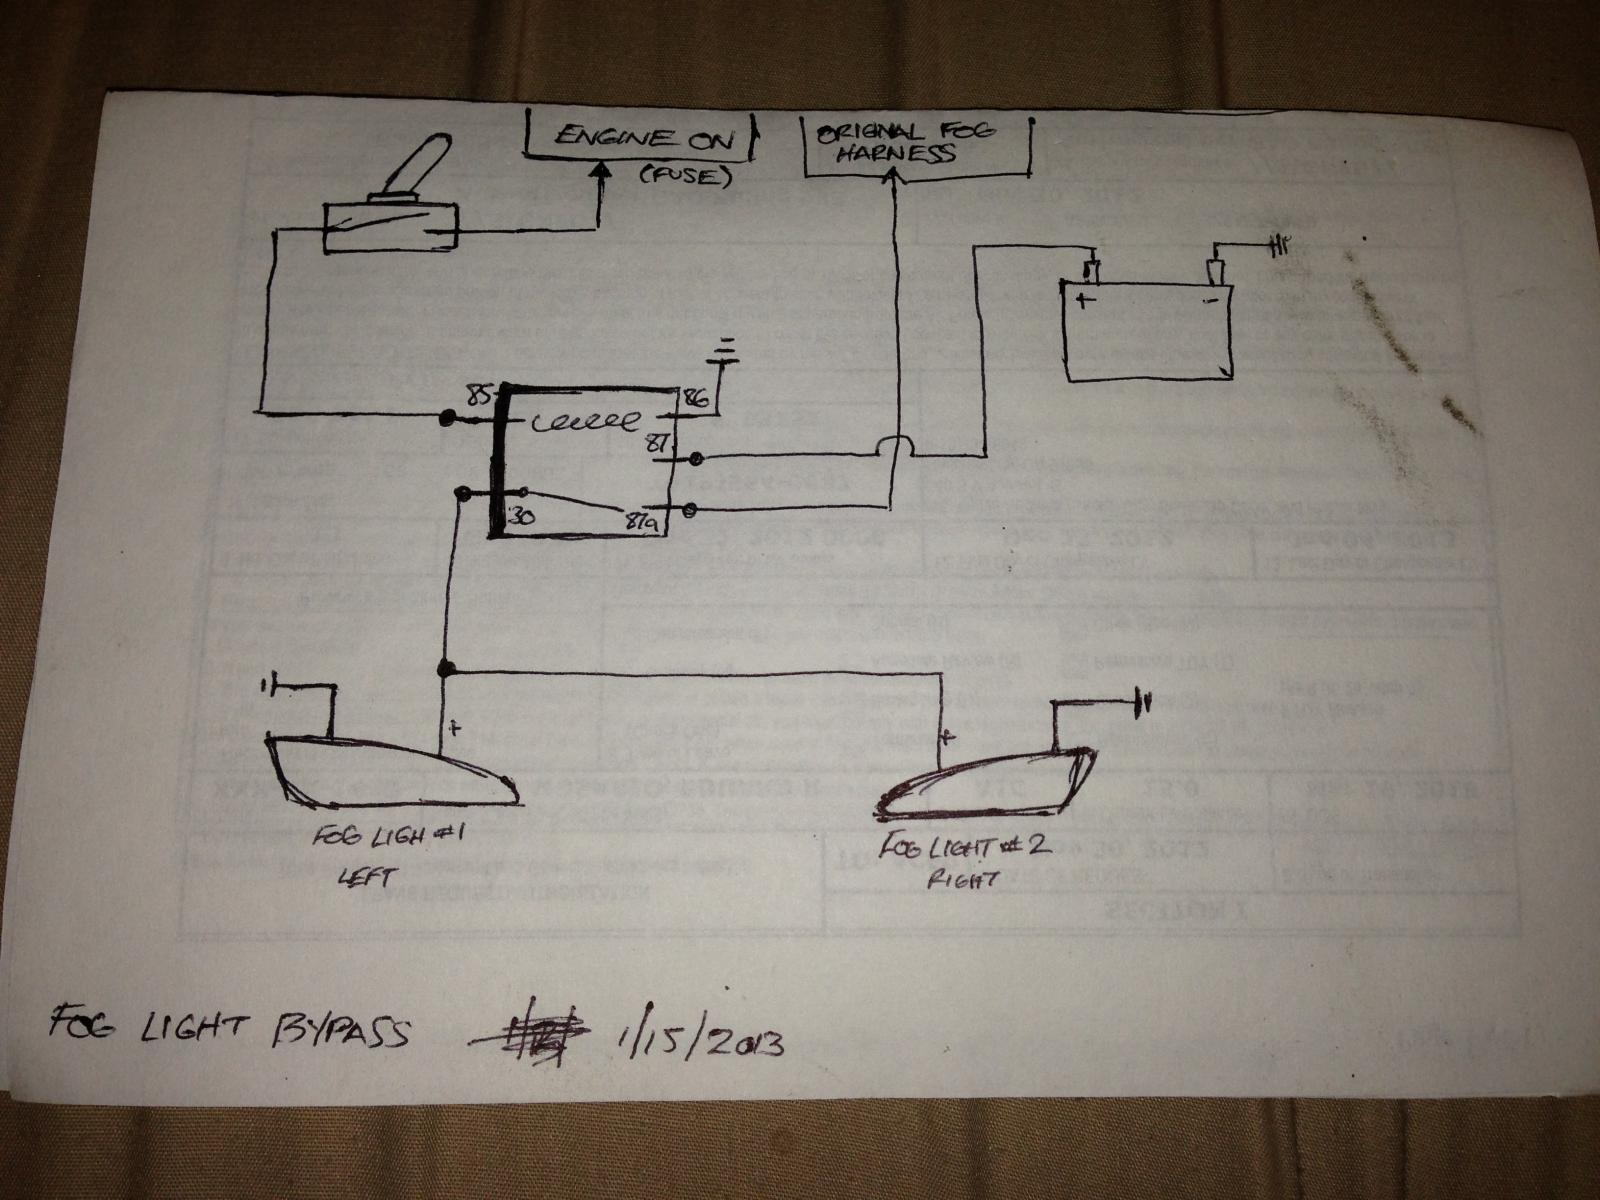 hight resolution of simple wiring diagram to bypass foglights works w o headlights or w highbeams